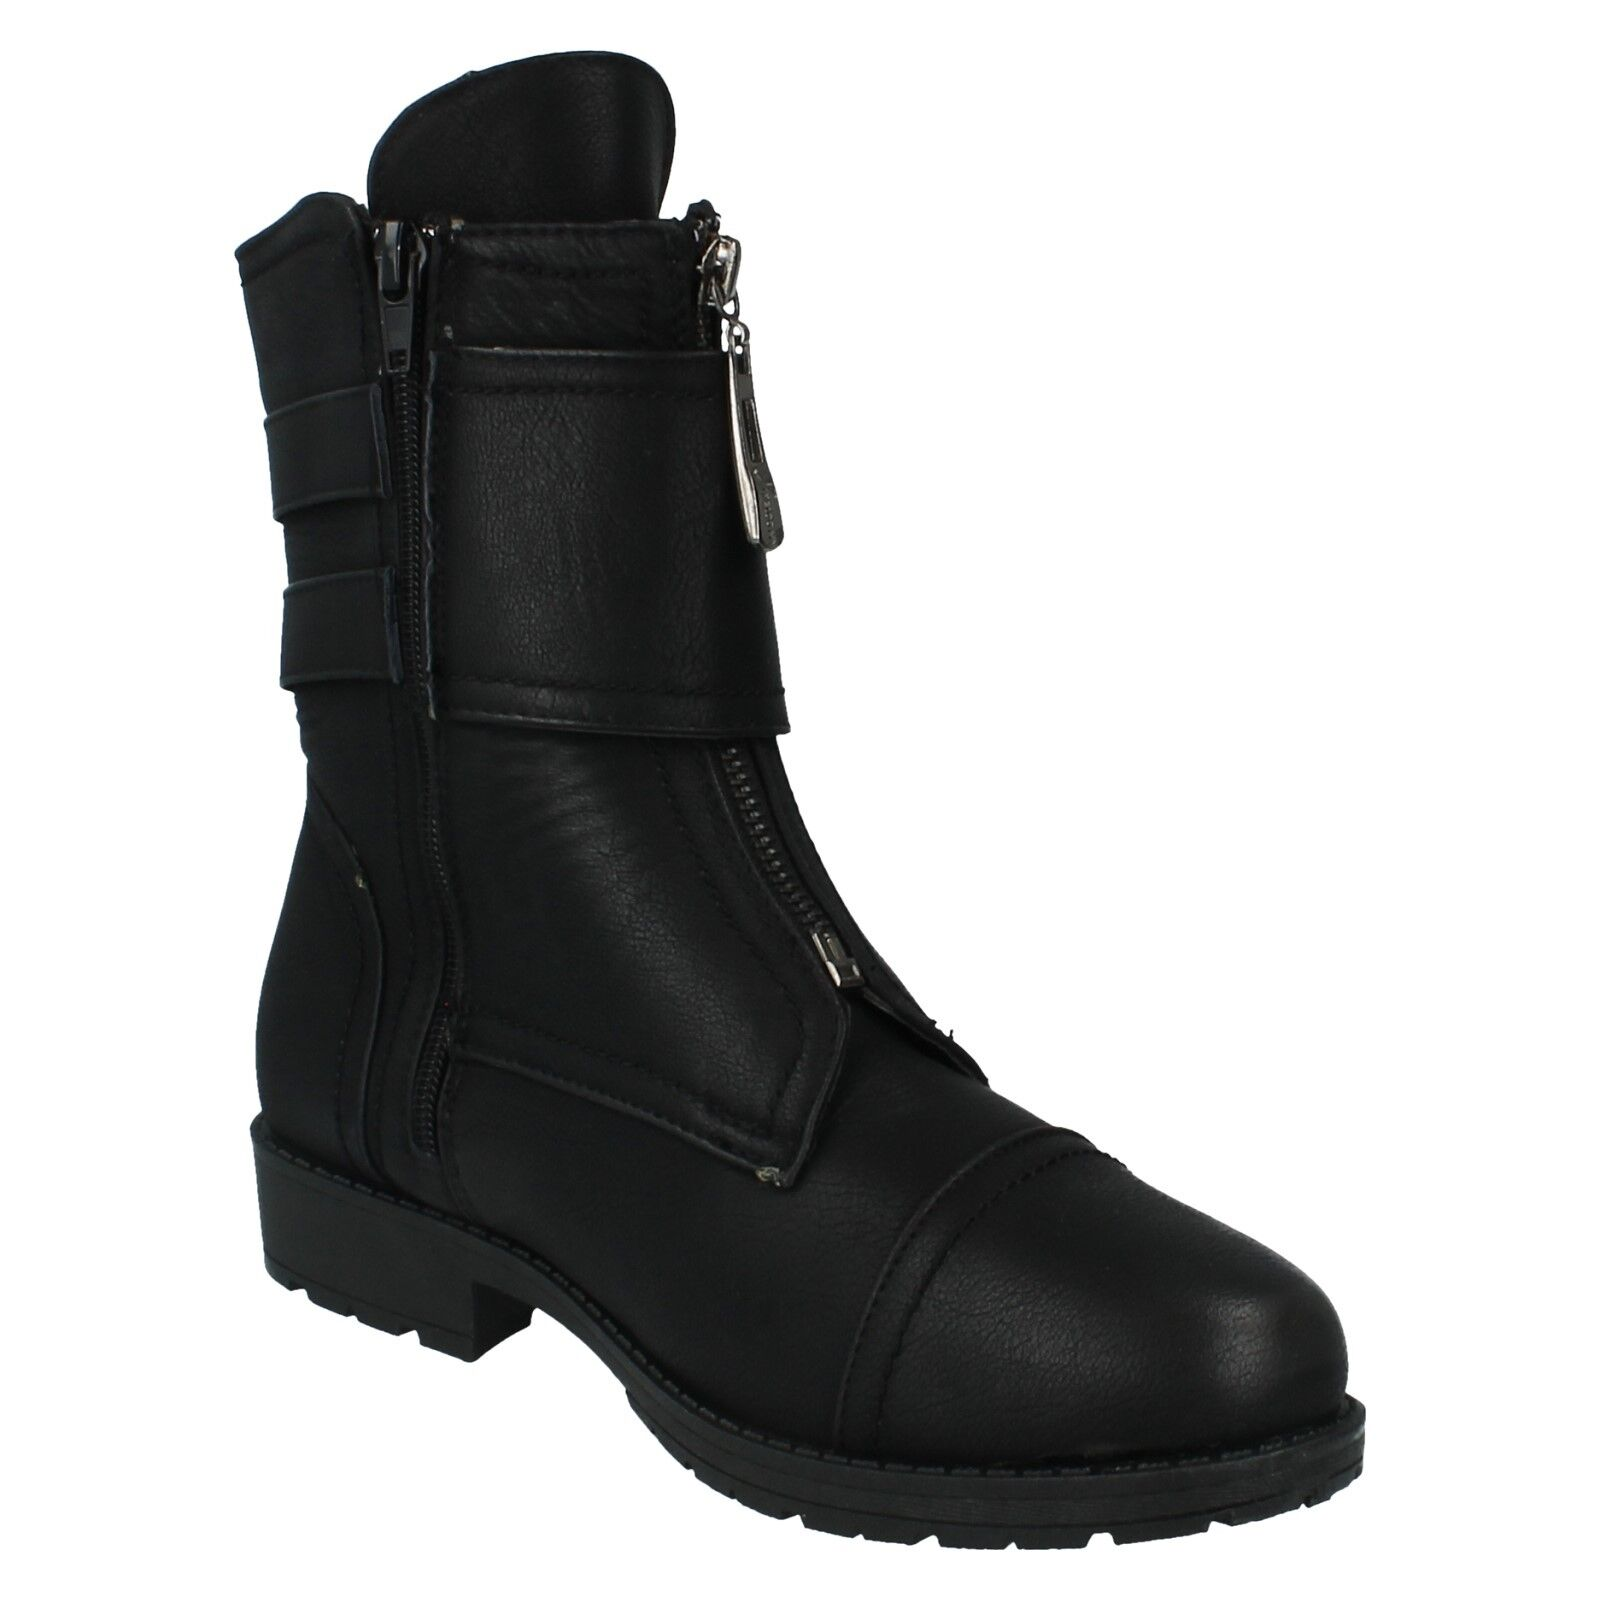 LADIES SPOT ON ZIP UP BUCKLE CASUAL SMART MID CALF BOOTS SHOES F50309